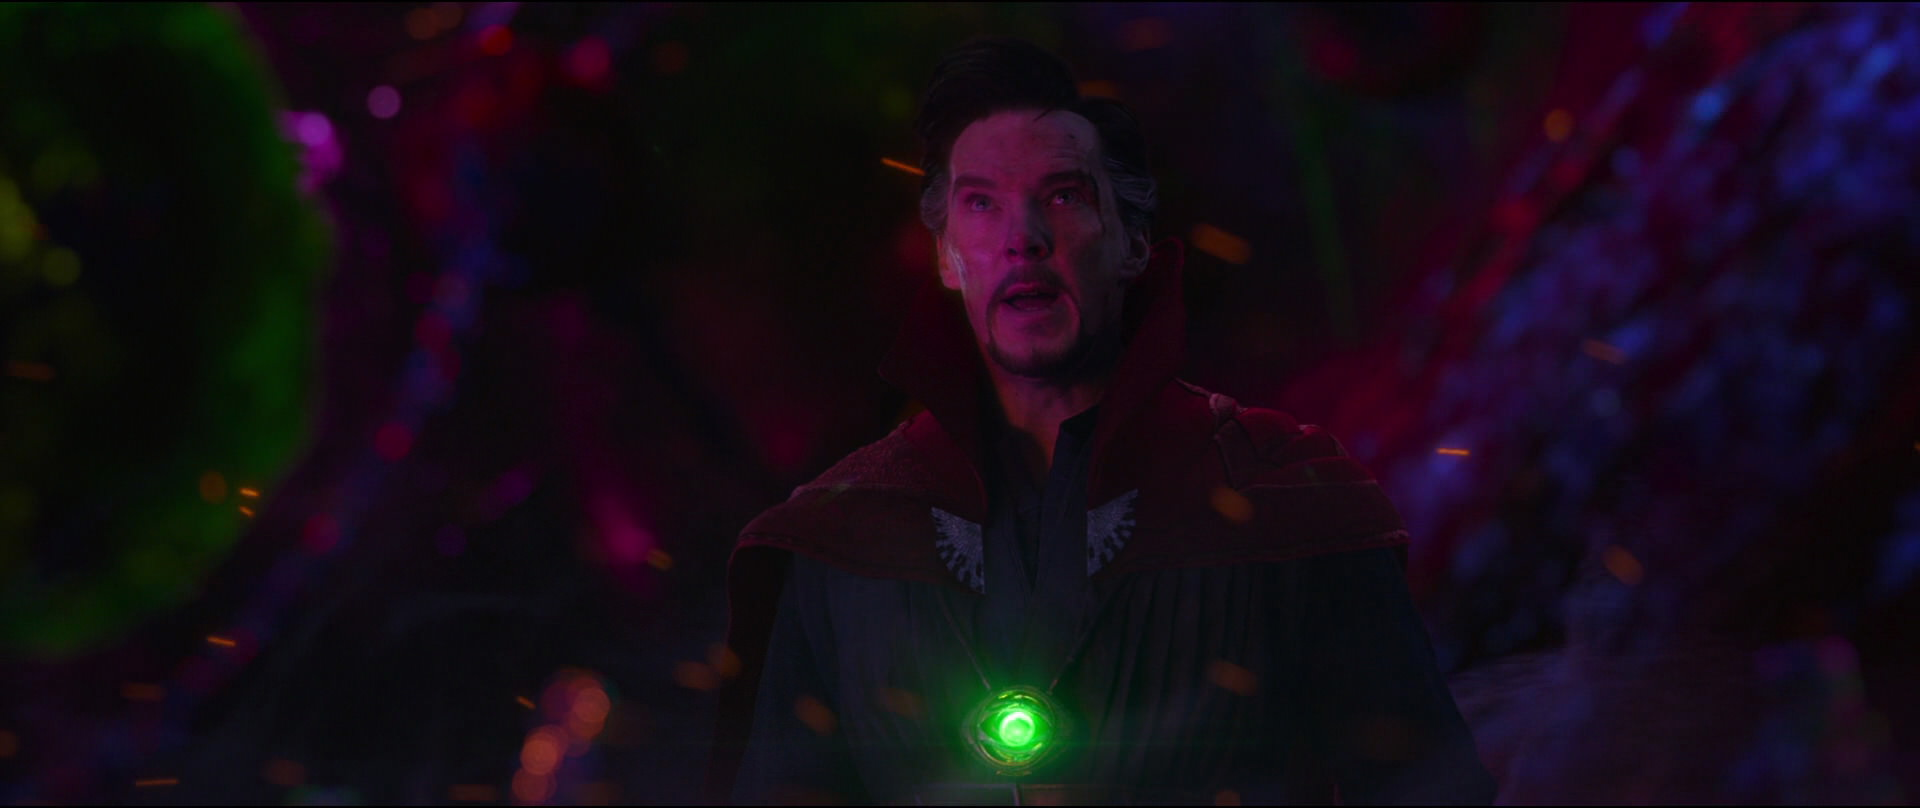 http://caps.pictures/201/6-doctorstrange/full/dr-strange-movie-screencaps.com-11512.jpg